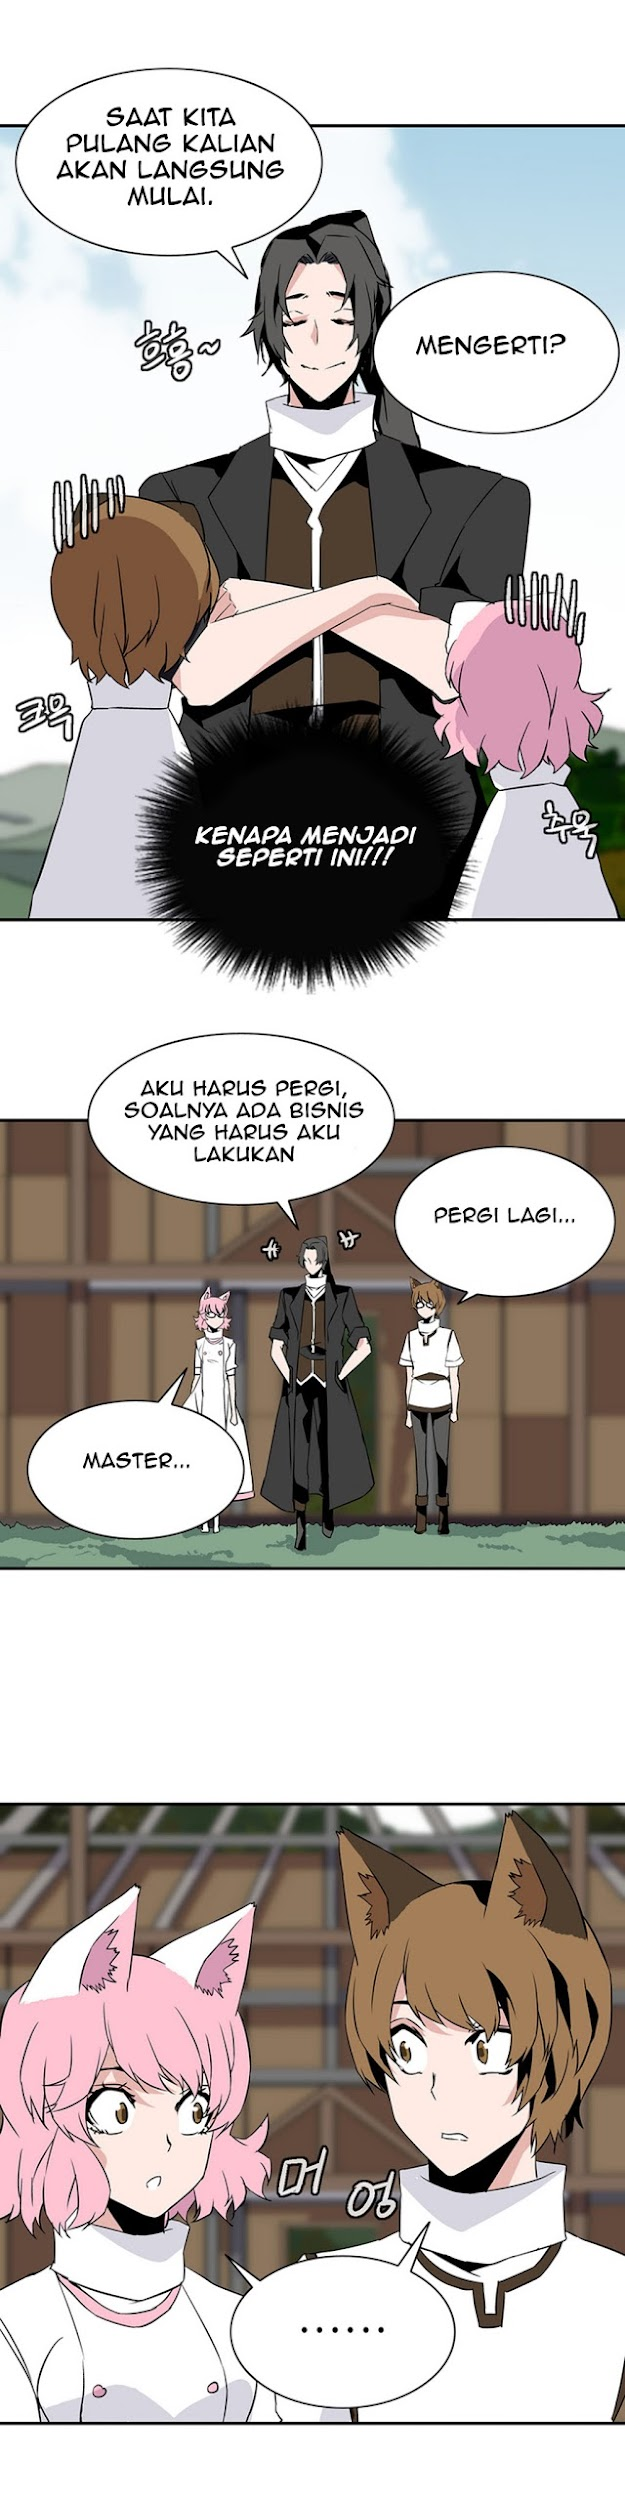 Dilarang COPAS - situs resmi www.mangacanblog.com - Komik wizardly tower 024 - chapter 24 25 Indonesia wizardly tower 024 - chapter 24 Terbaru 14|Baca Manga Komik Indonesia|Mangacan